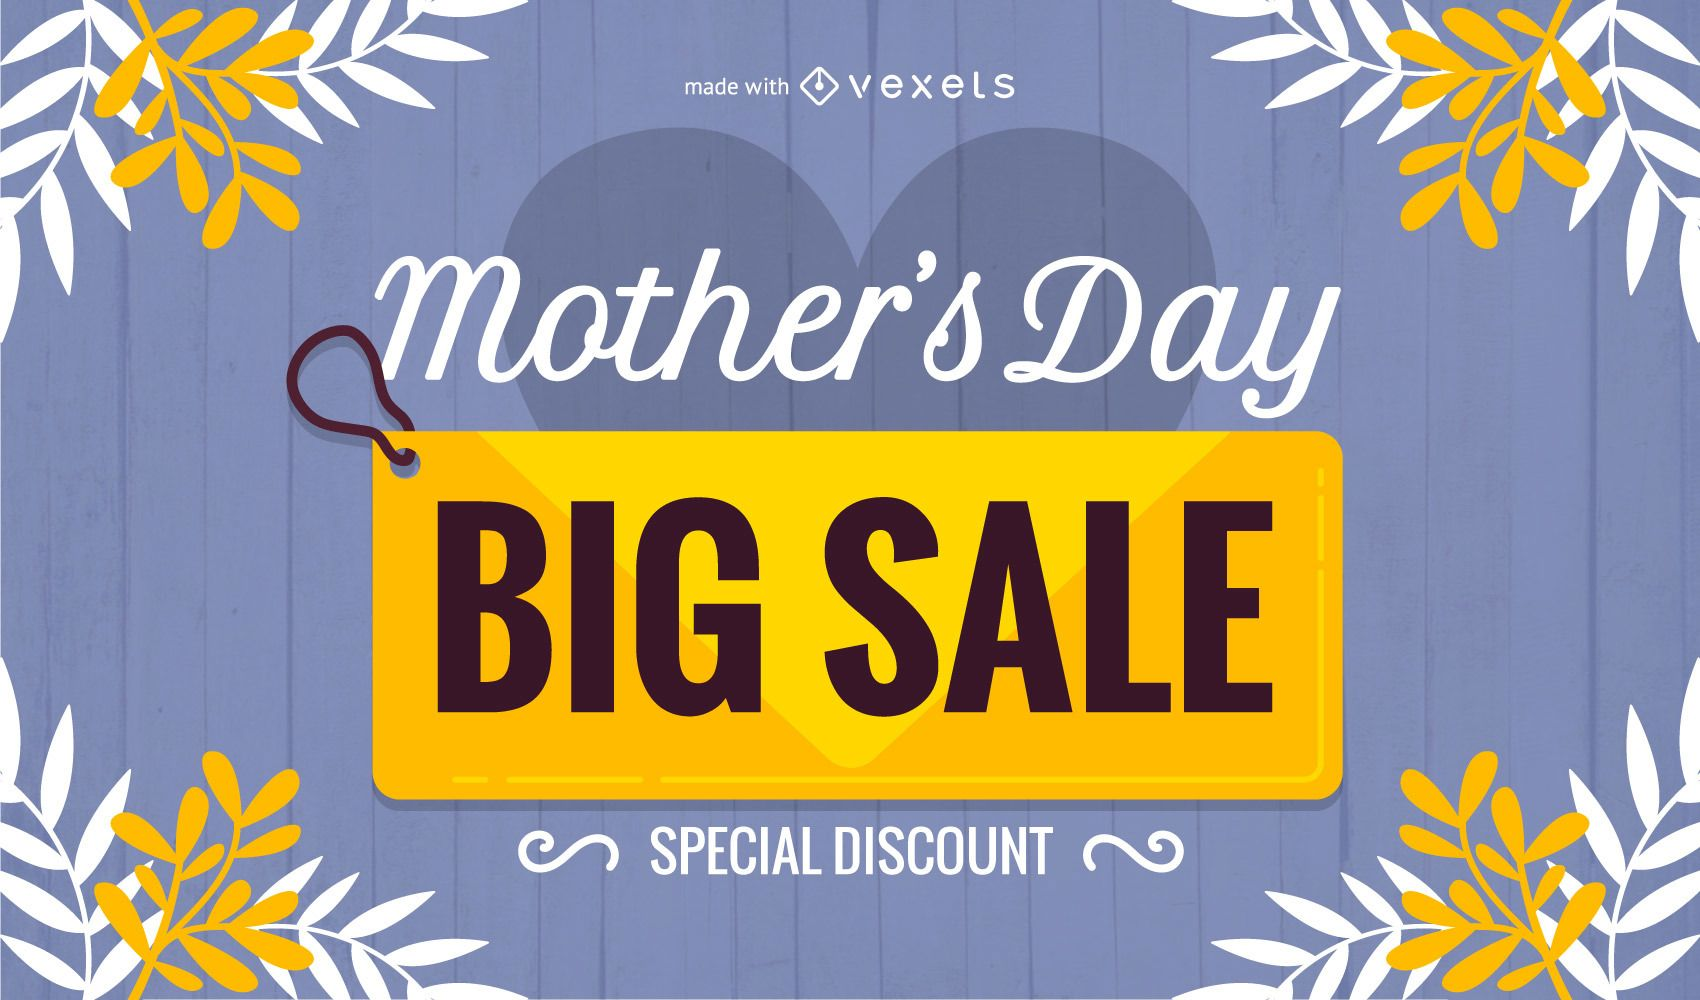 Mother's Day sale promo maker